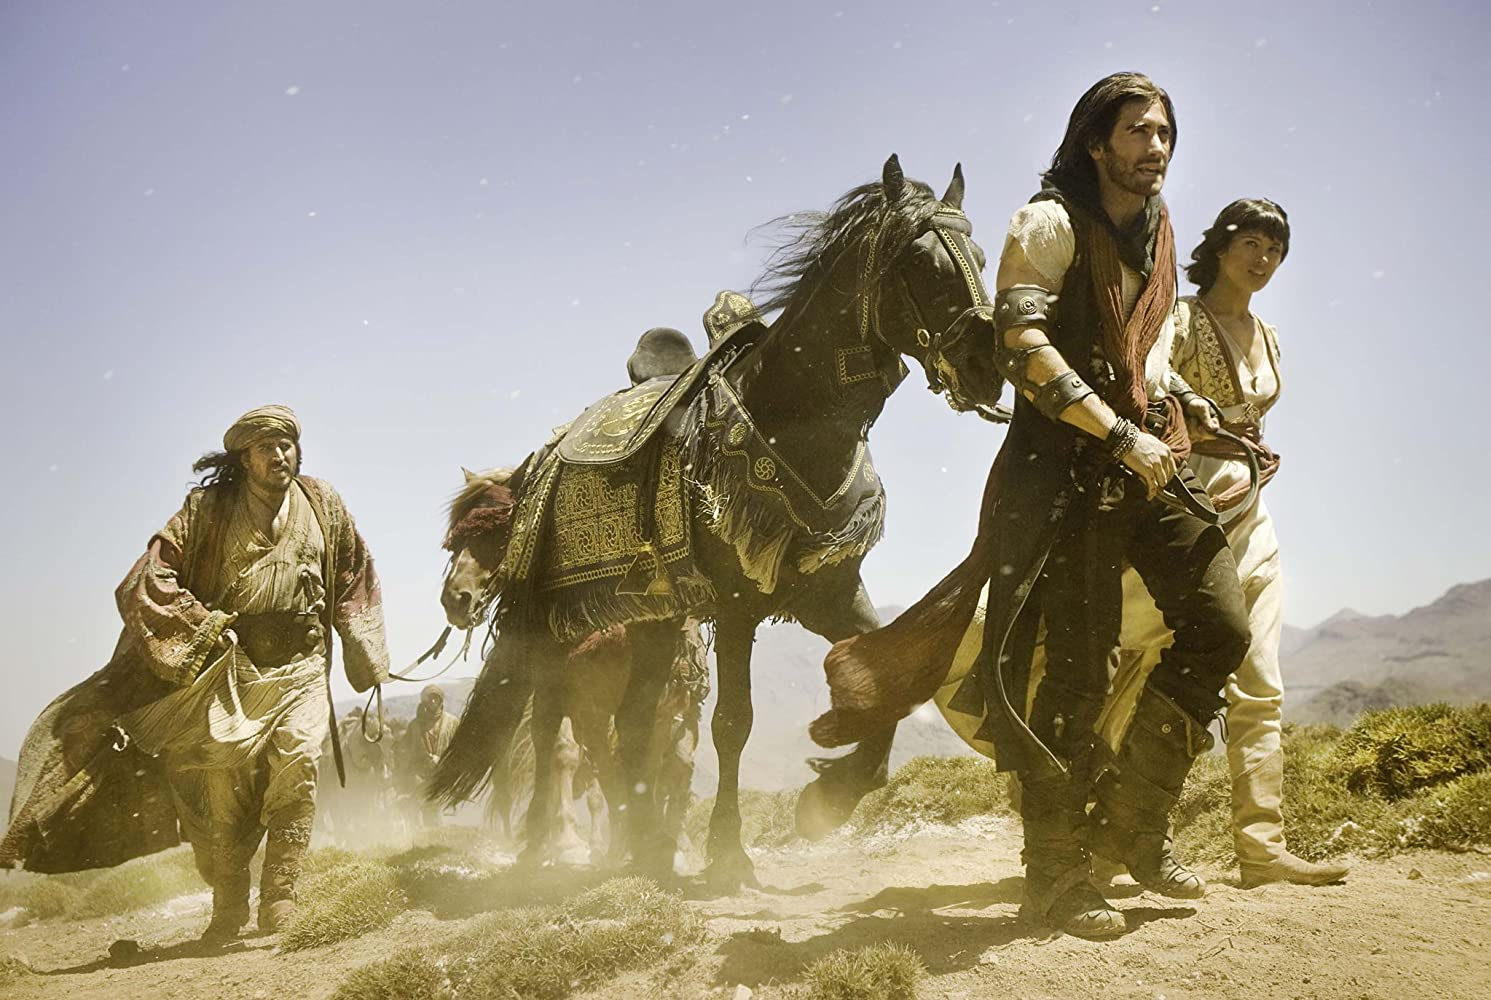 Alfred Molina, Jake Gyllenhaal, and Gemma Arterton in Prince of Persia: The Sands of Time (2010)